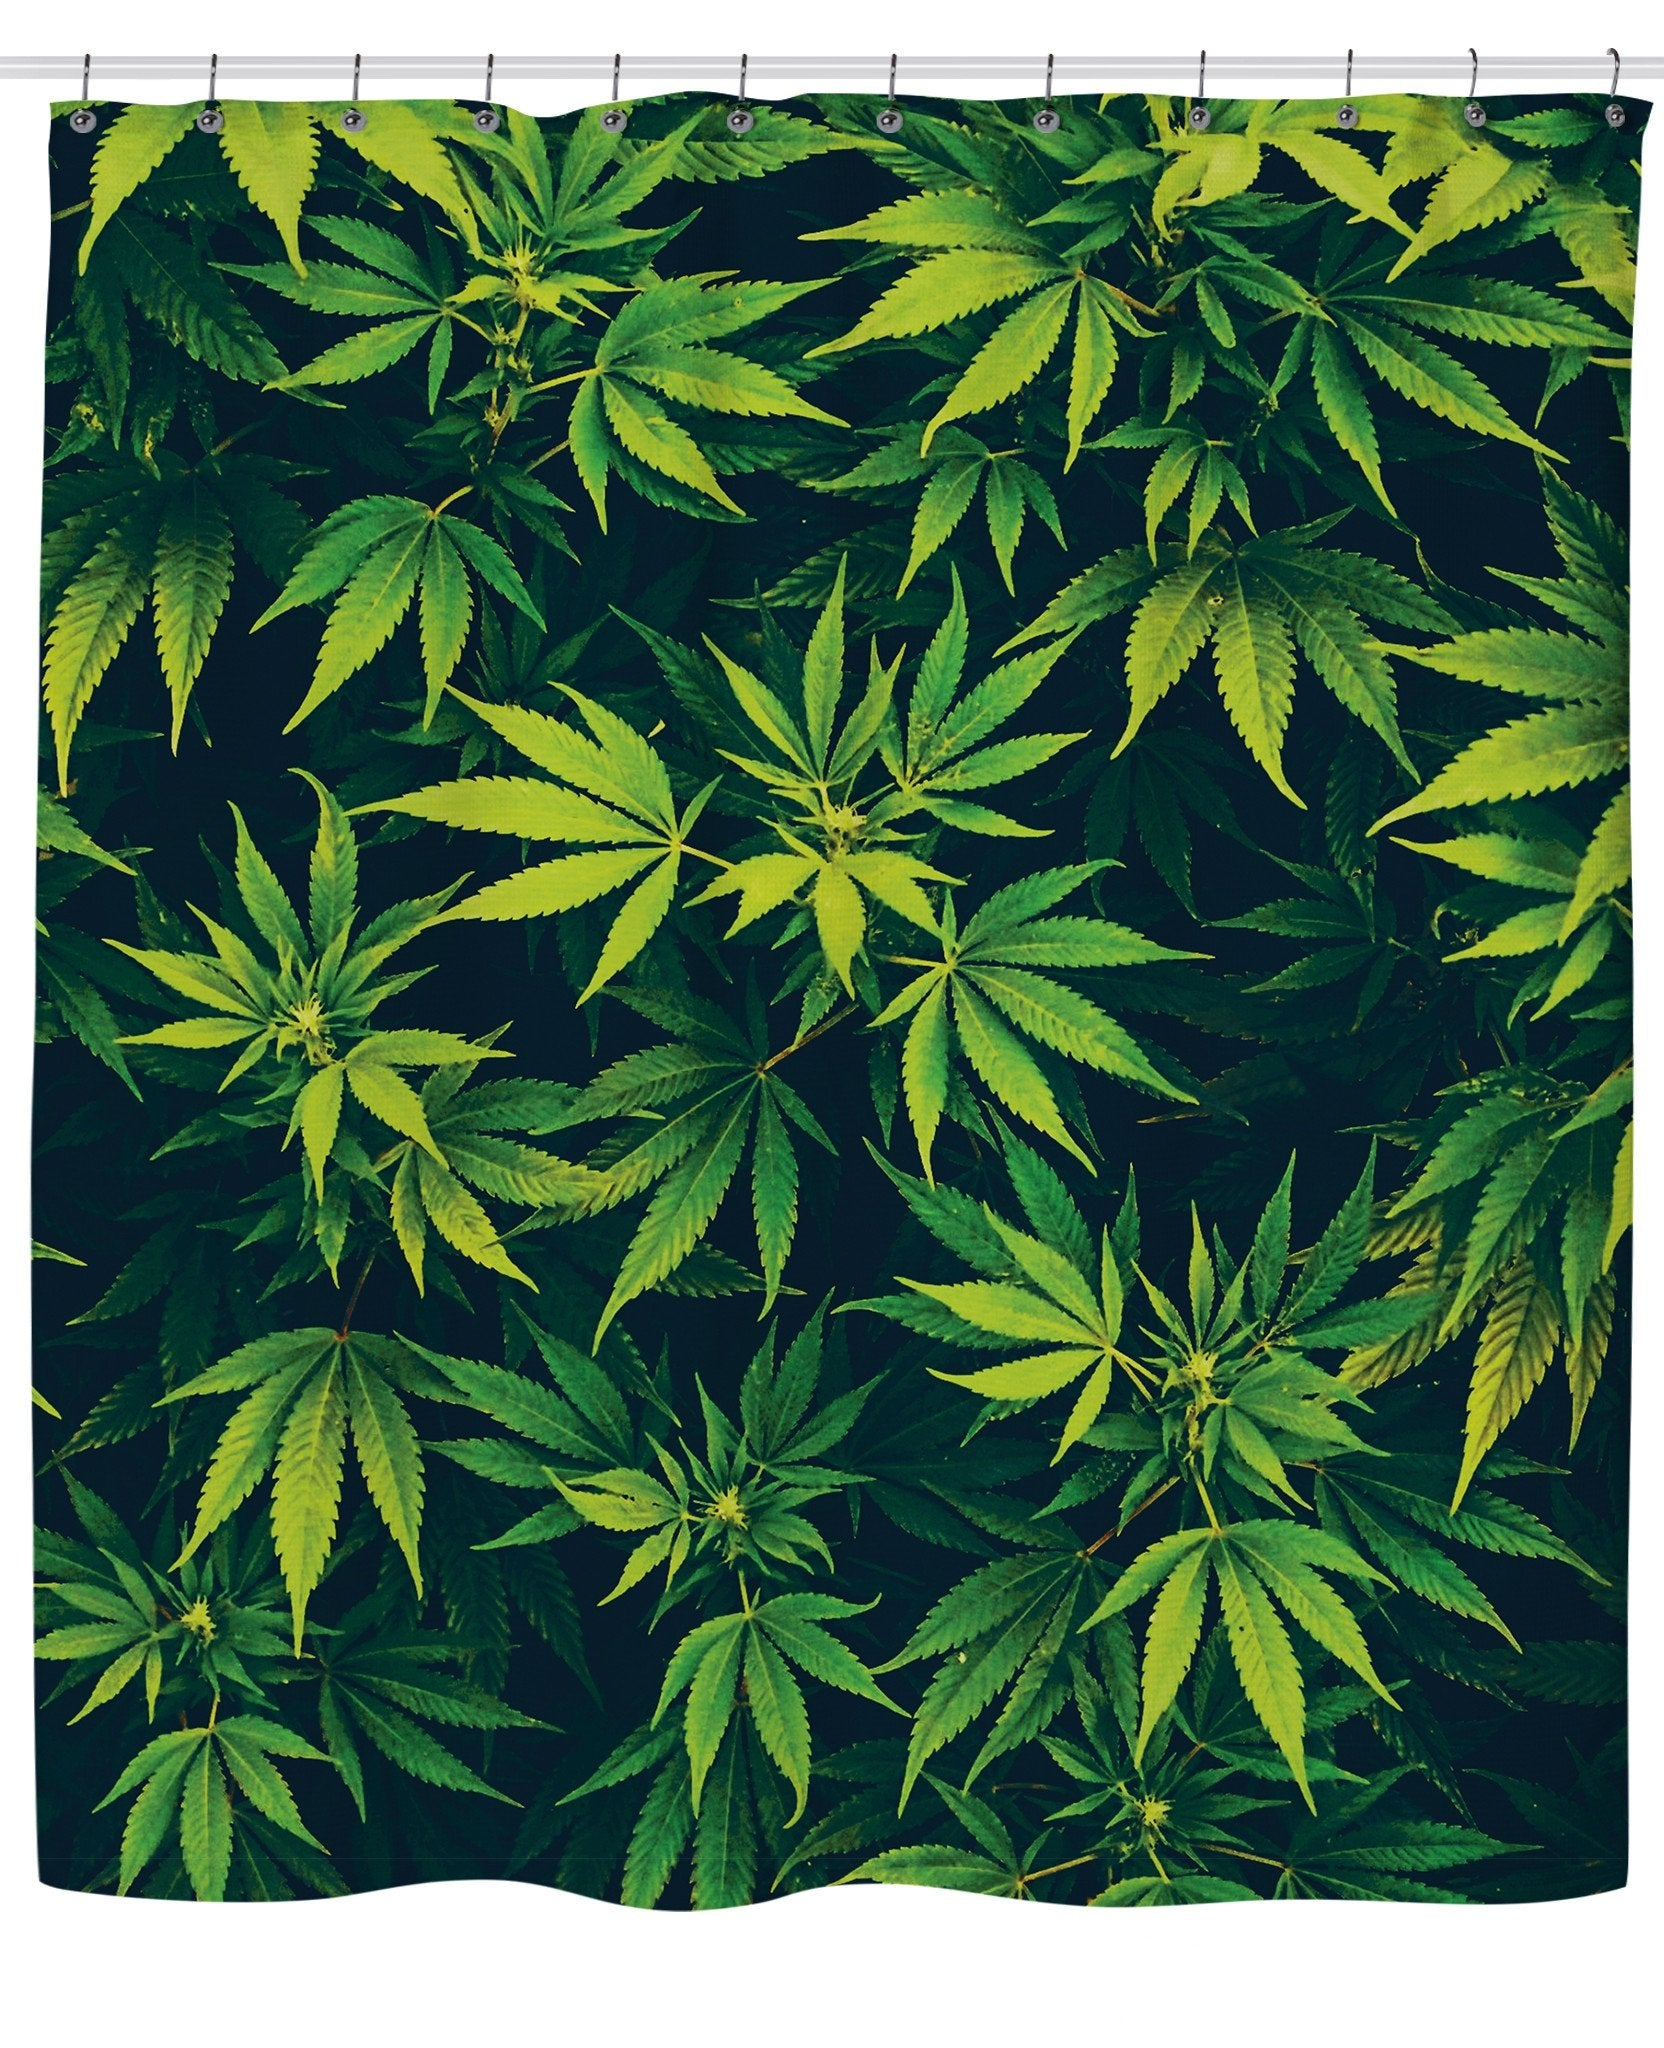 Weed Shower Curtain